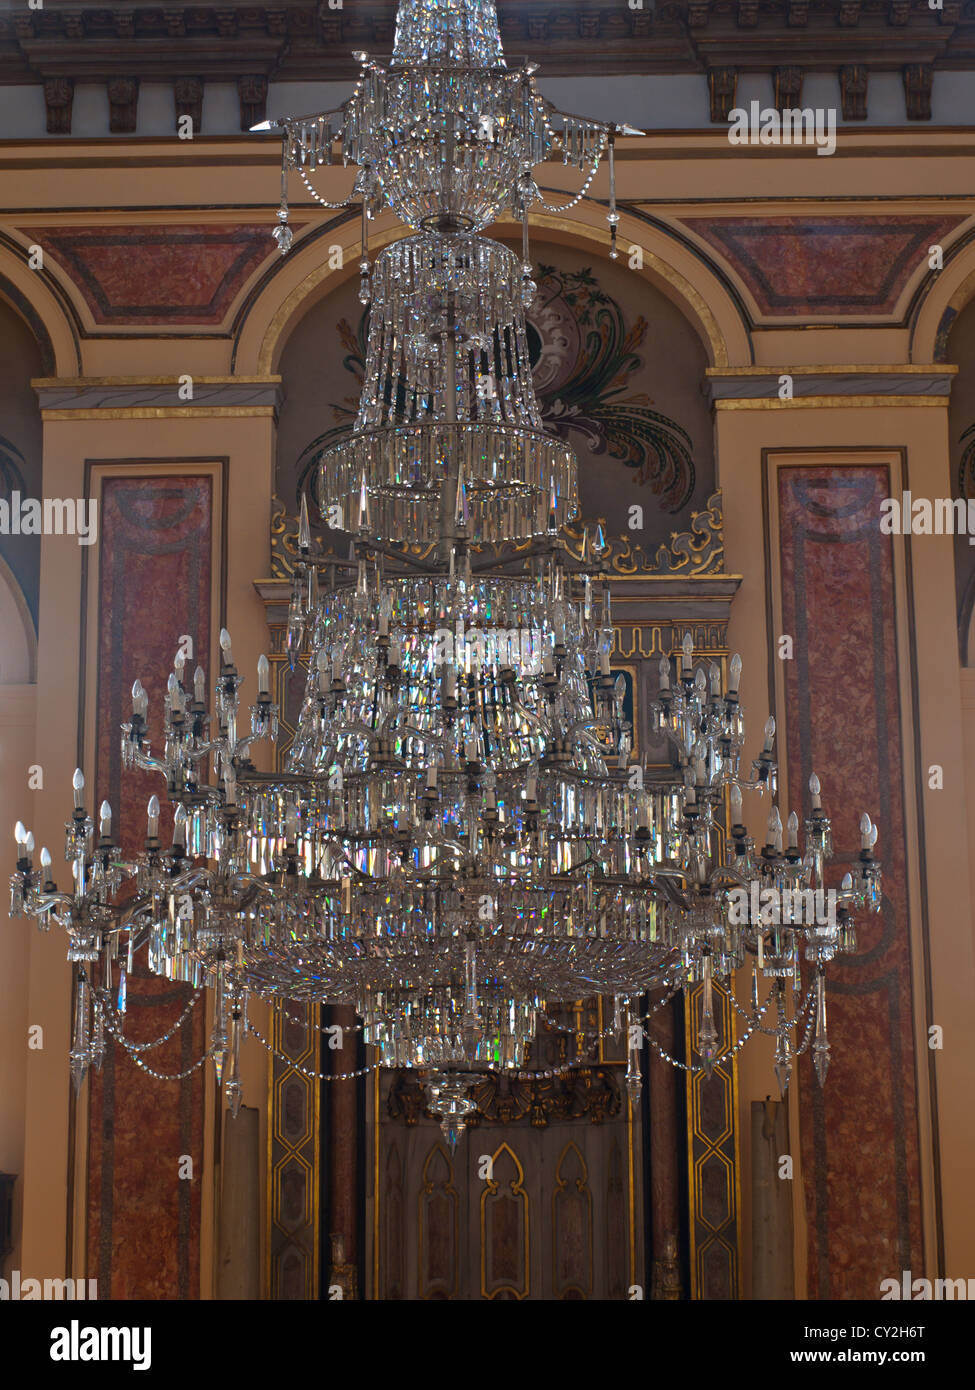 Dolmabache mosque has a large hanging crystal chandelier probably dolmabache mosque has a large hanging crystal chandelier probably bohemian or baccarat crystal like the palace next door aloadofball Image collections